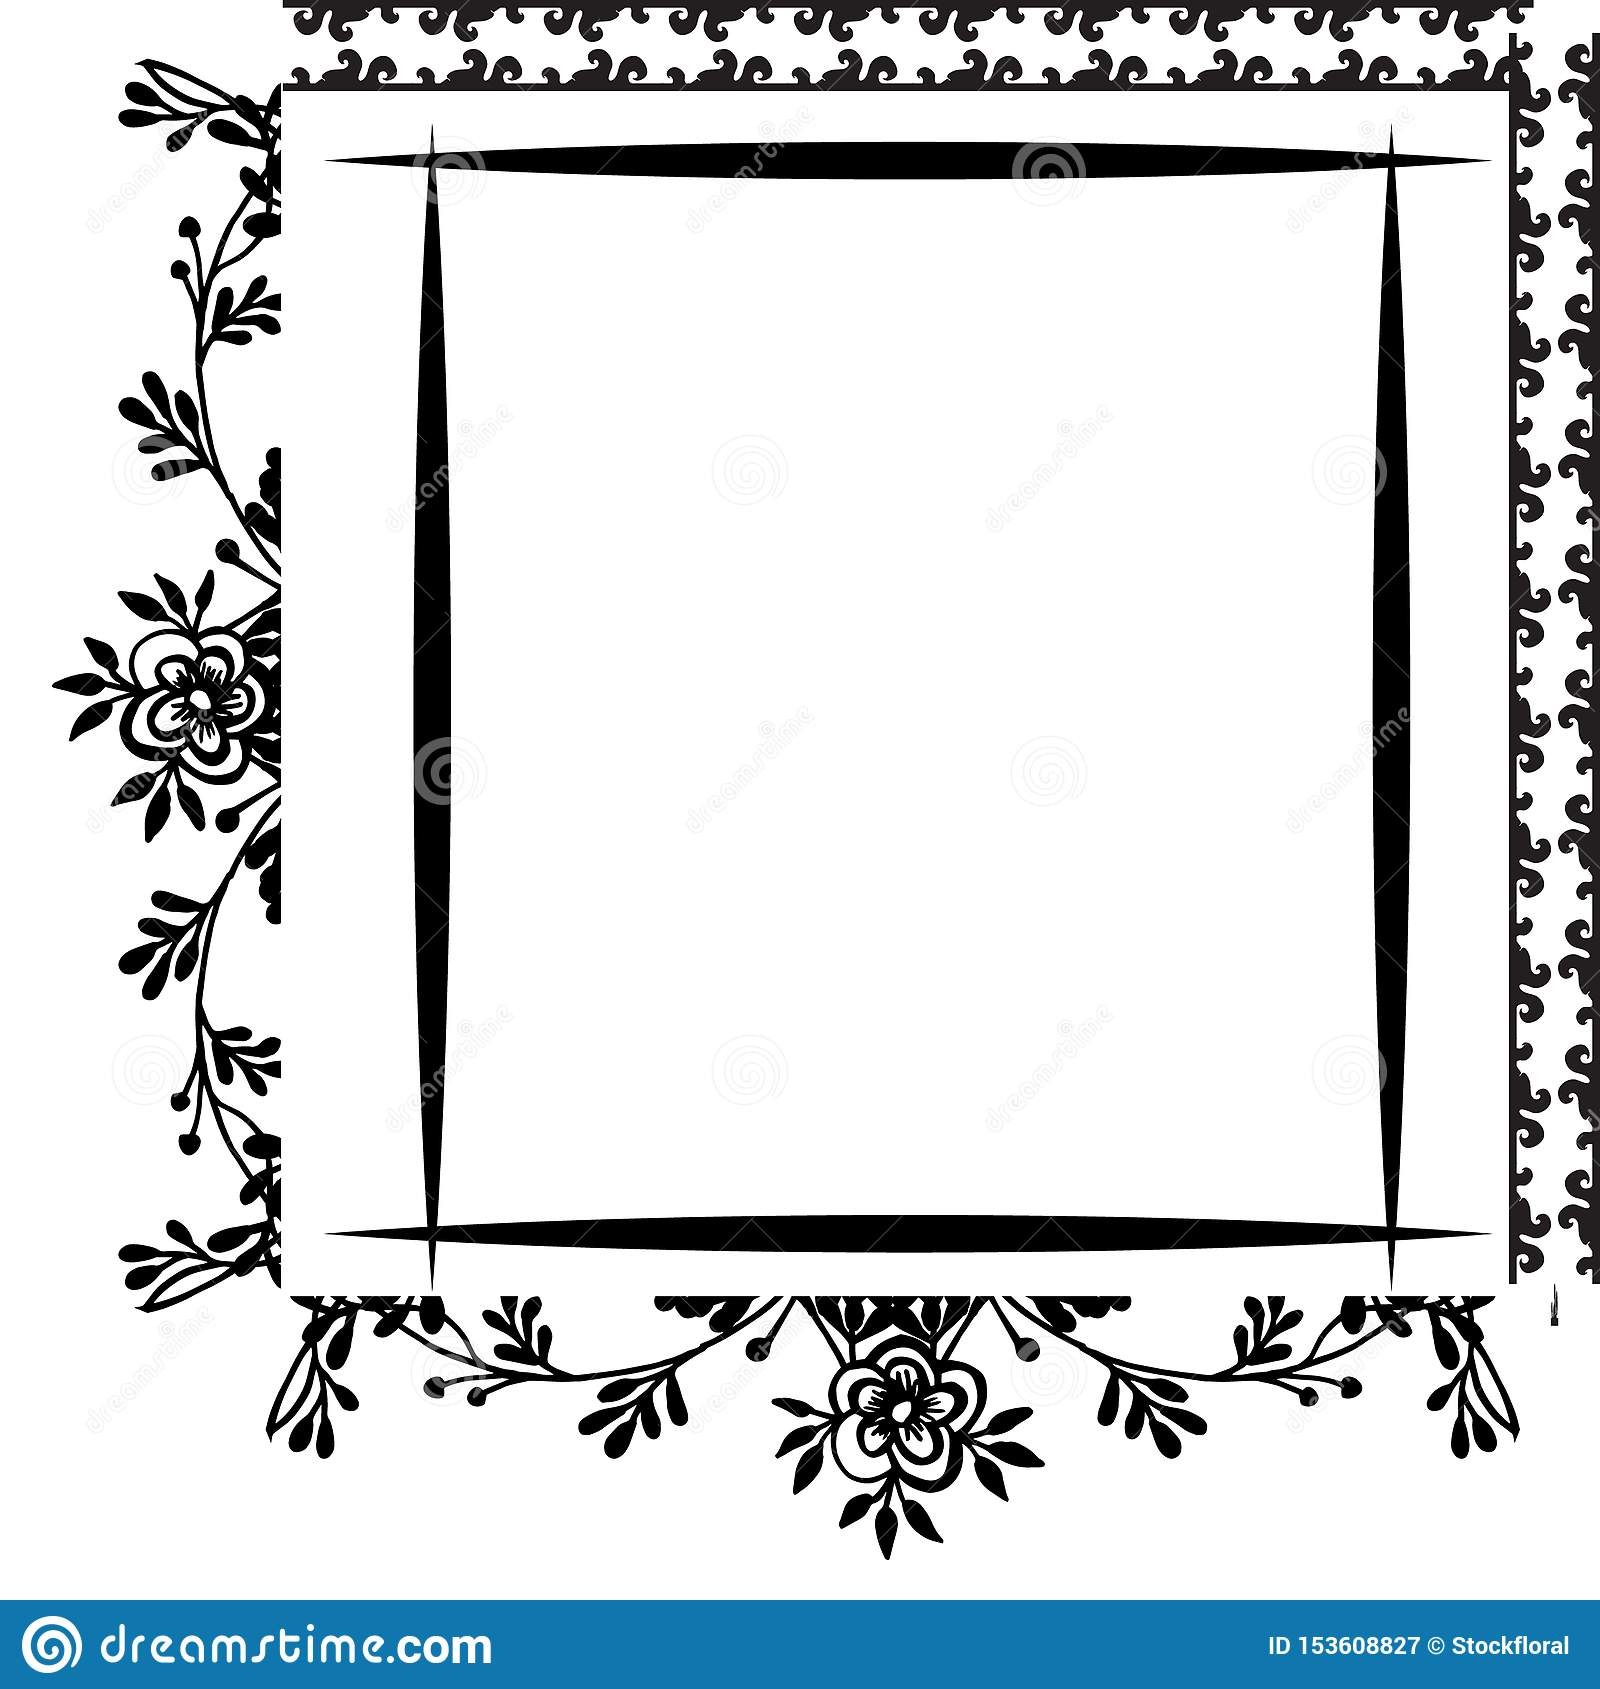 Border Frame Unique Drawing Flowers Invitation Card And